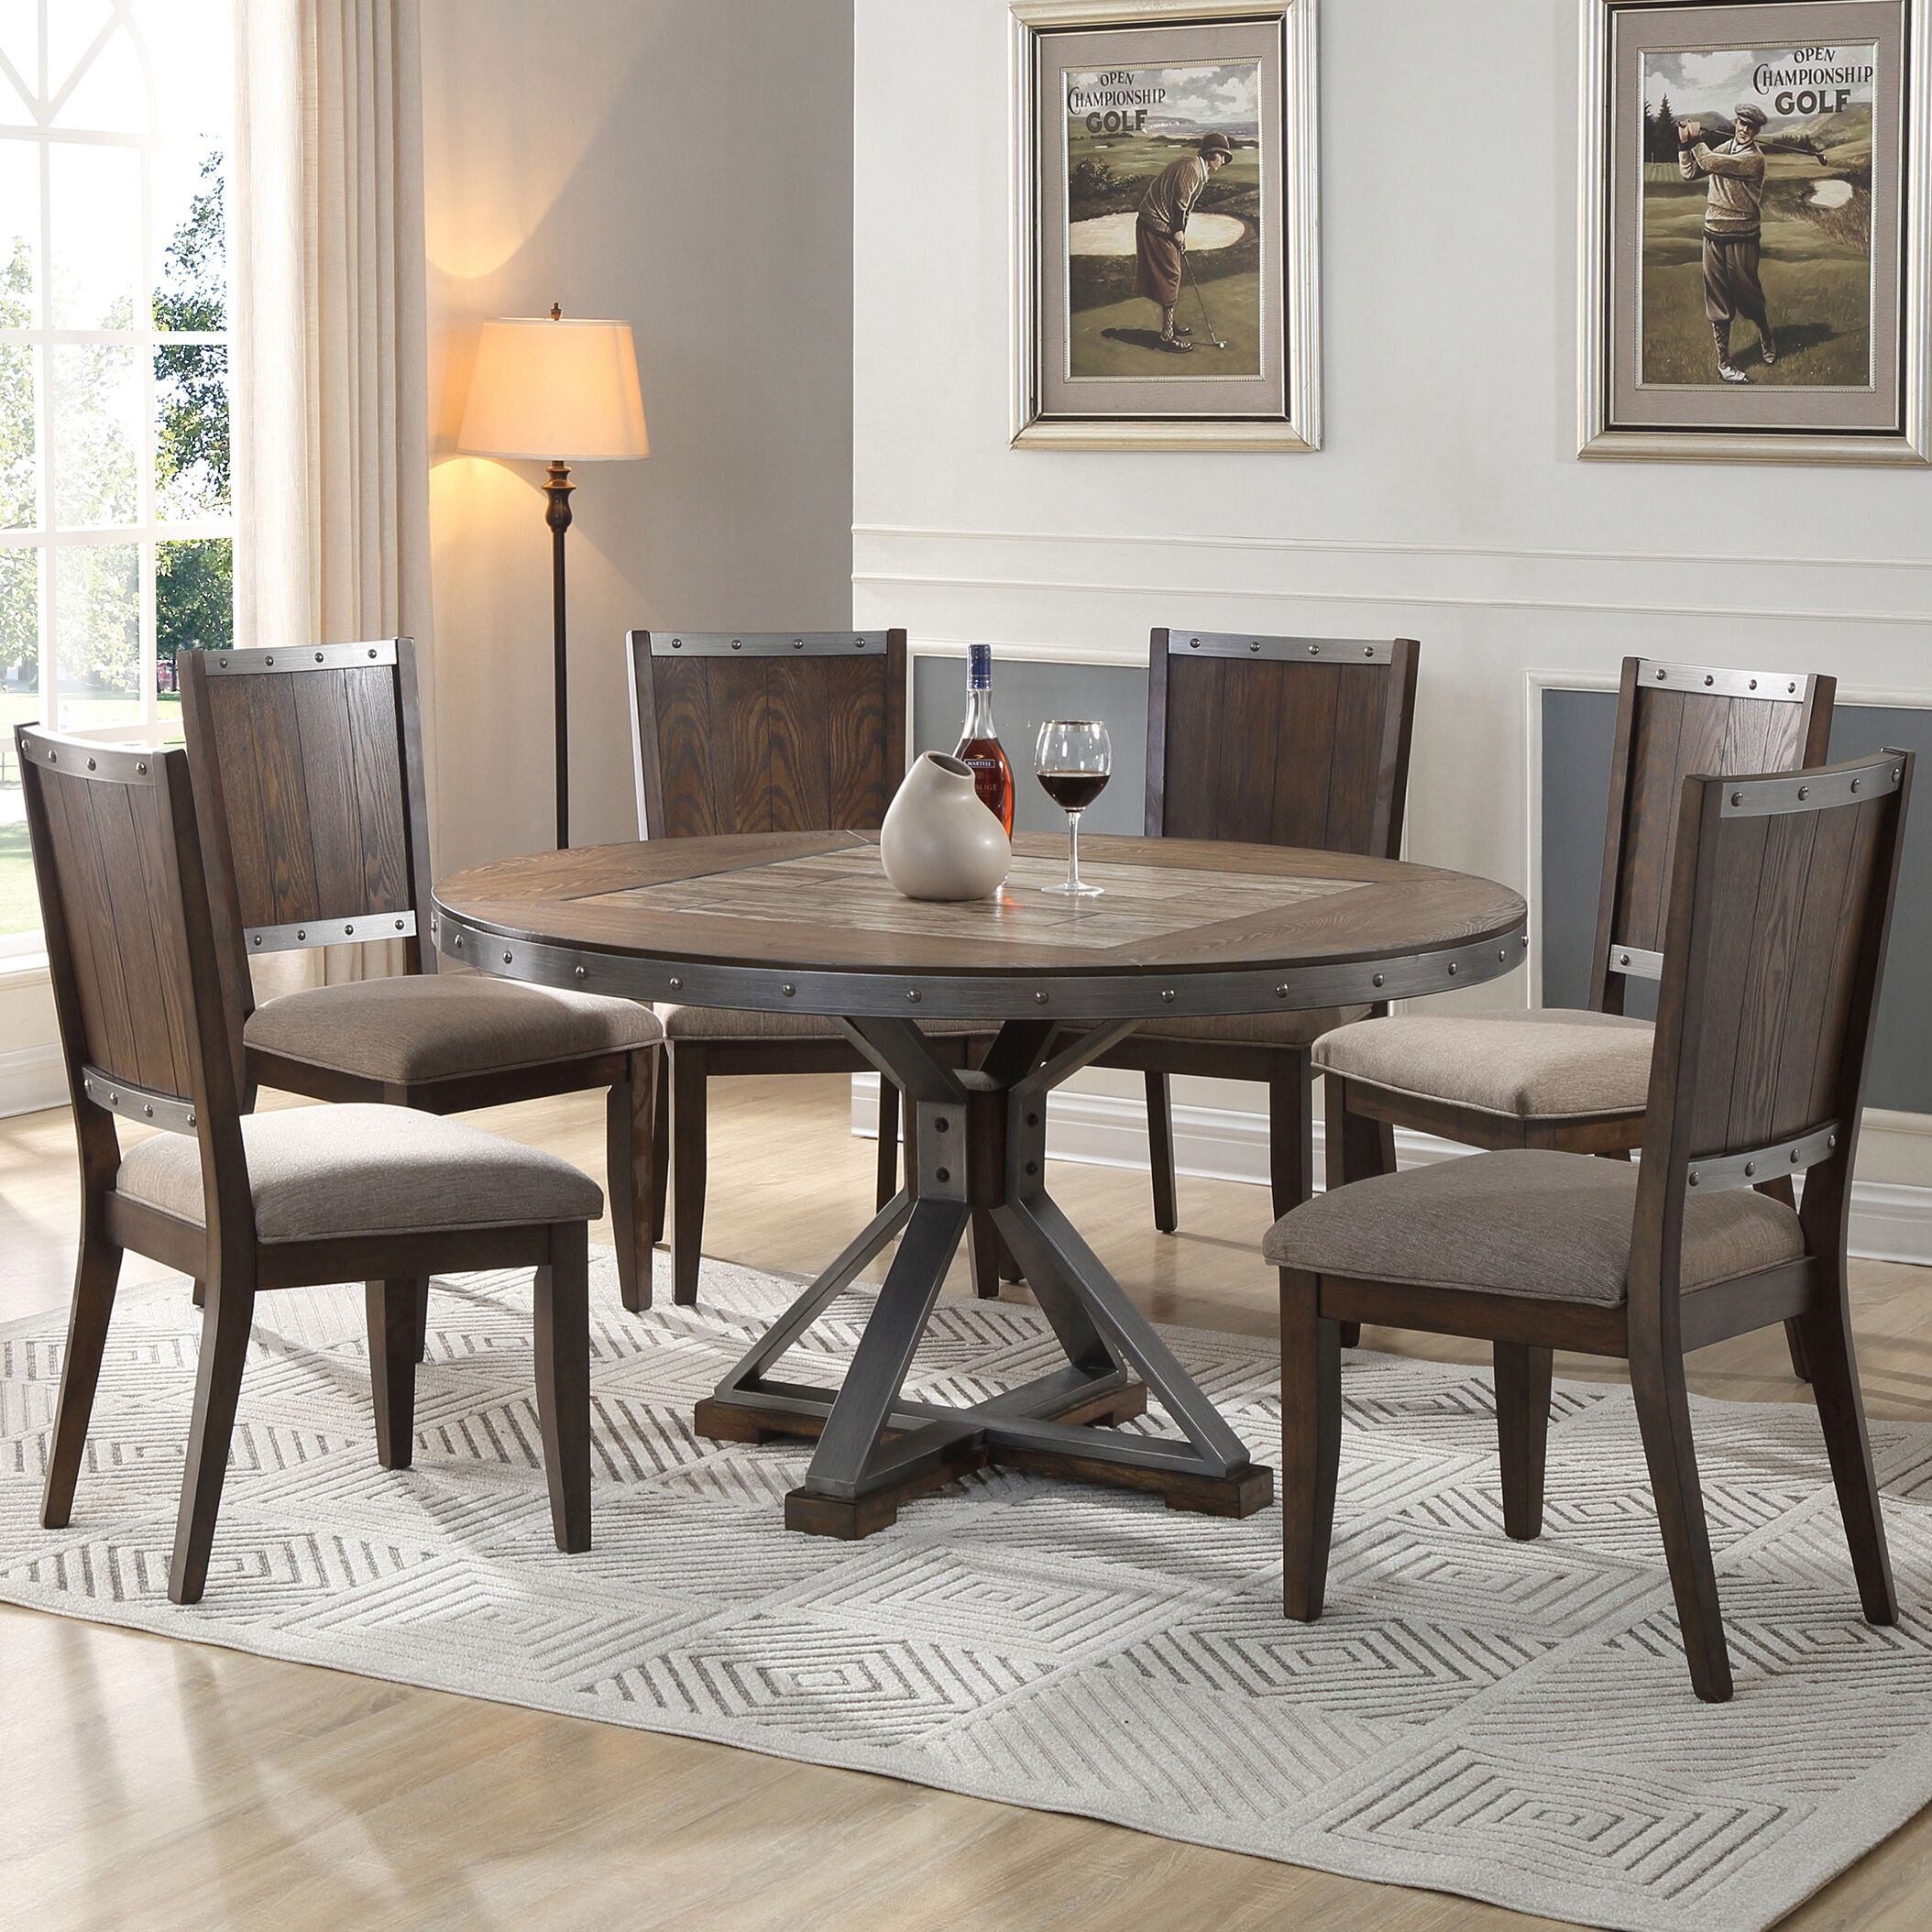 Dining Table Sets Honey 5 Piece Dining Set